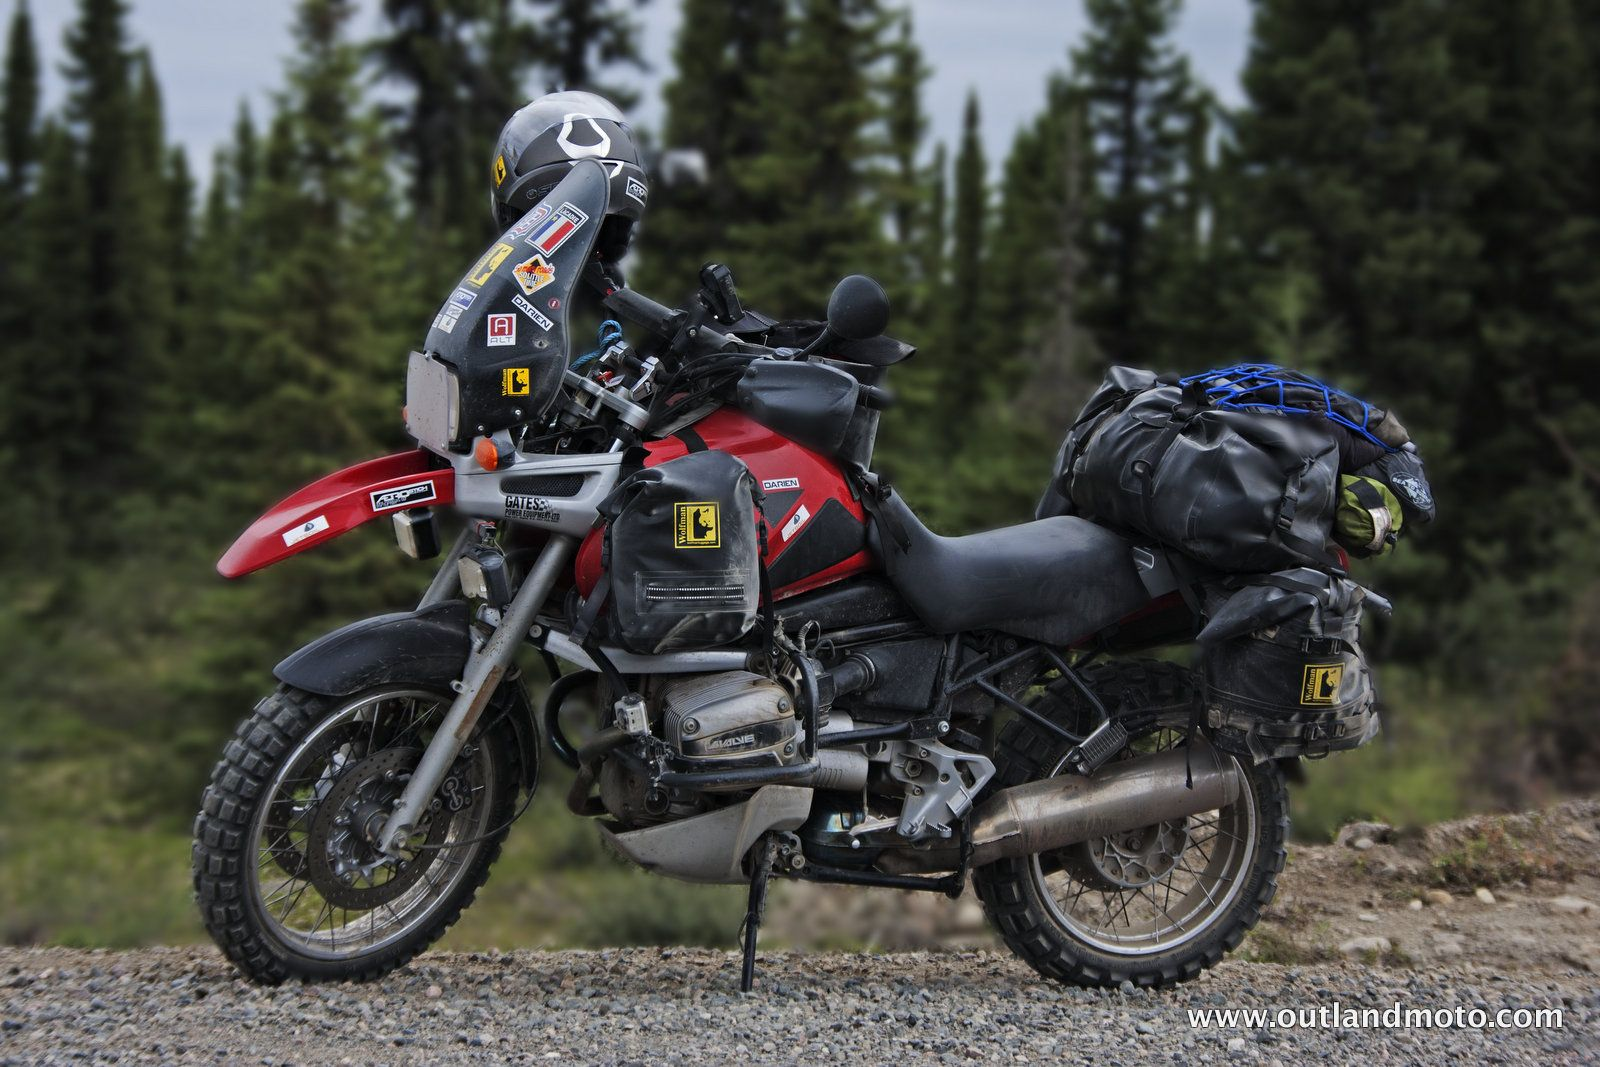 BMW R1100GS on the Trans Labrador Highway - Canada - http://www.outlandmoto.com